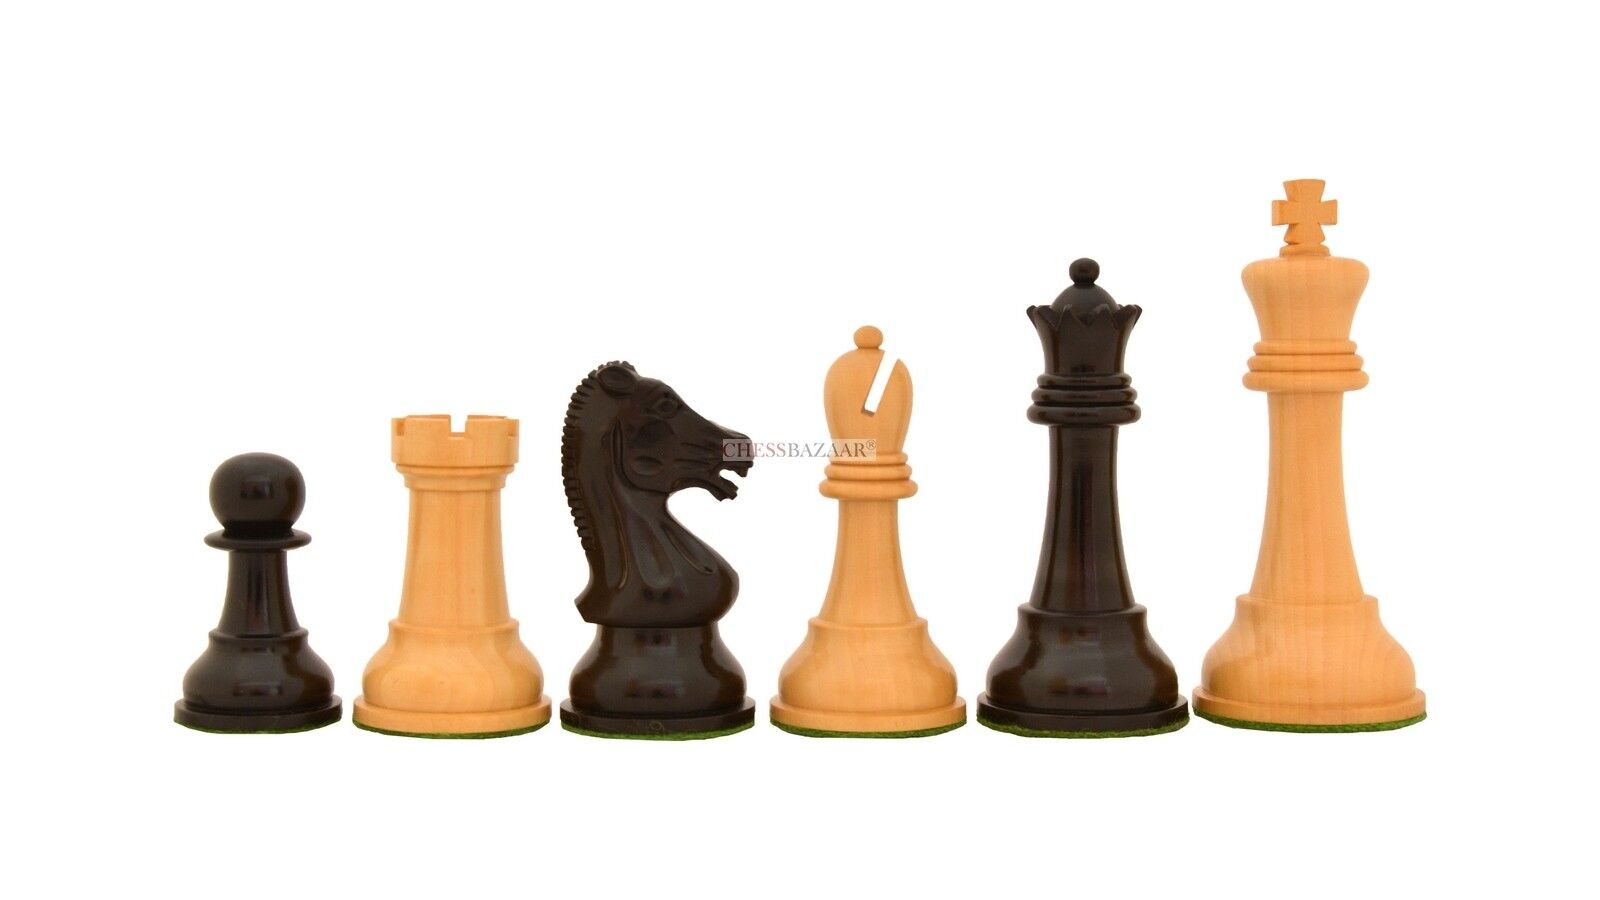 The  Reproduced Drueke Vintage  Chess Pieces in Ebony   Box Wood - 4  King R0362